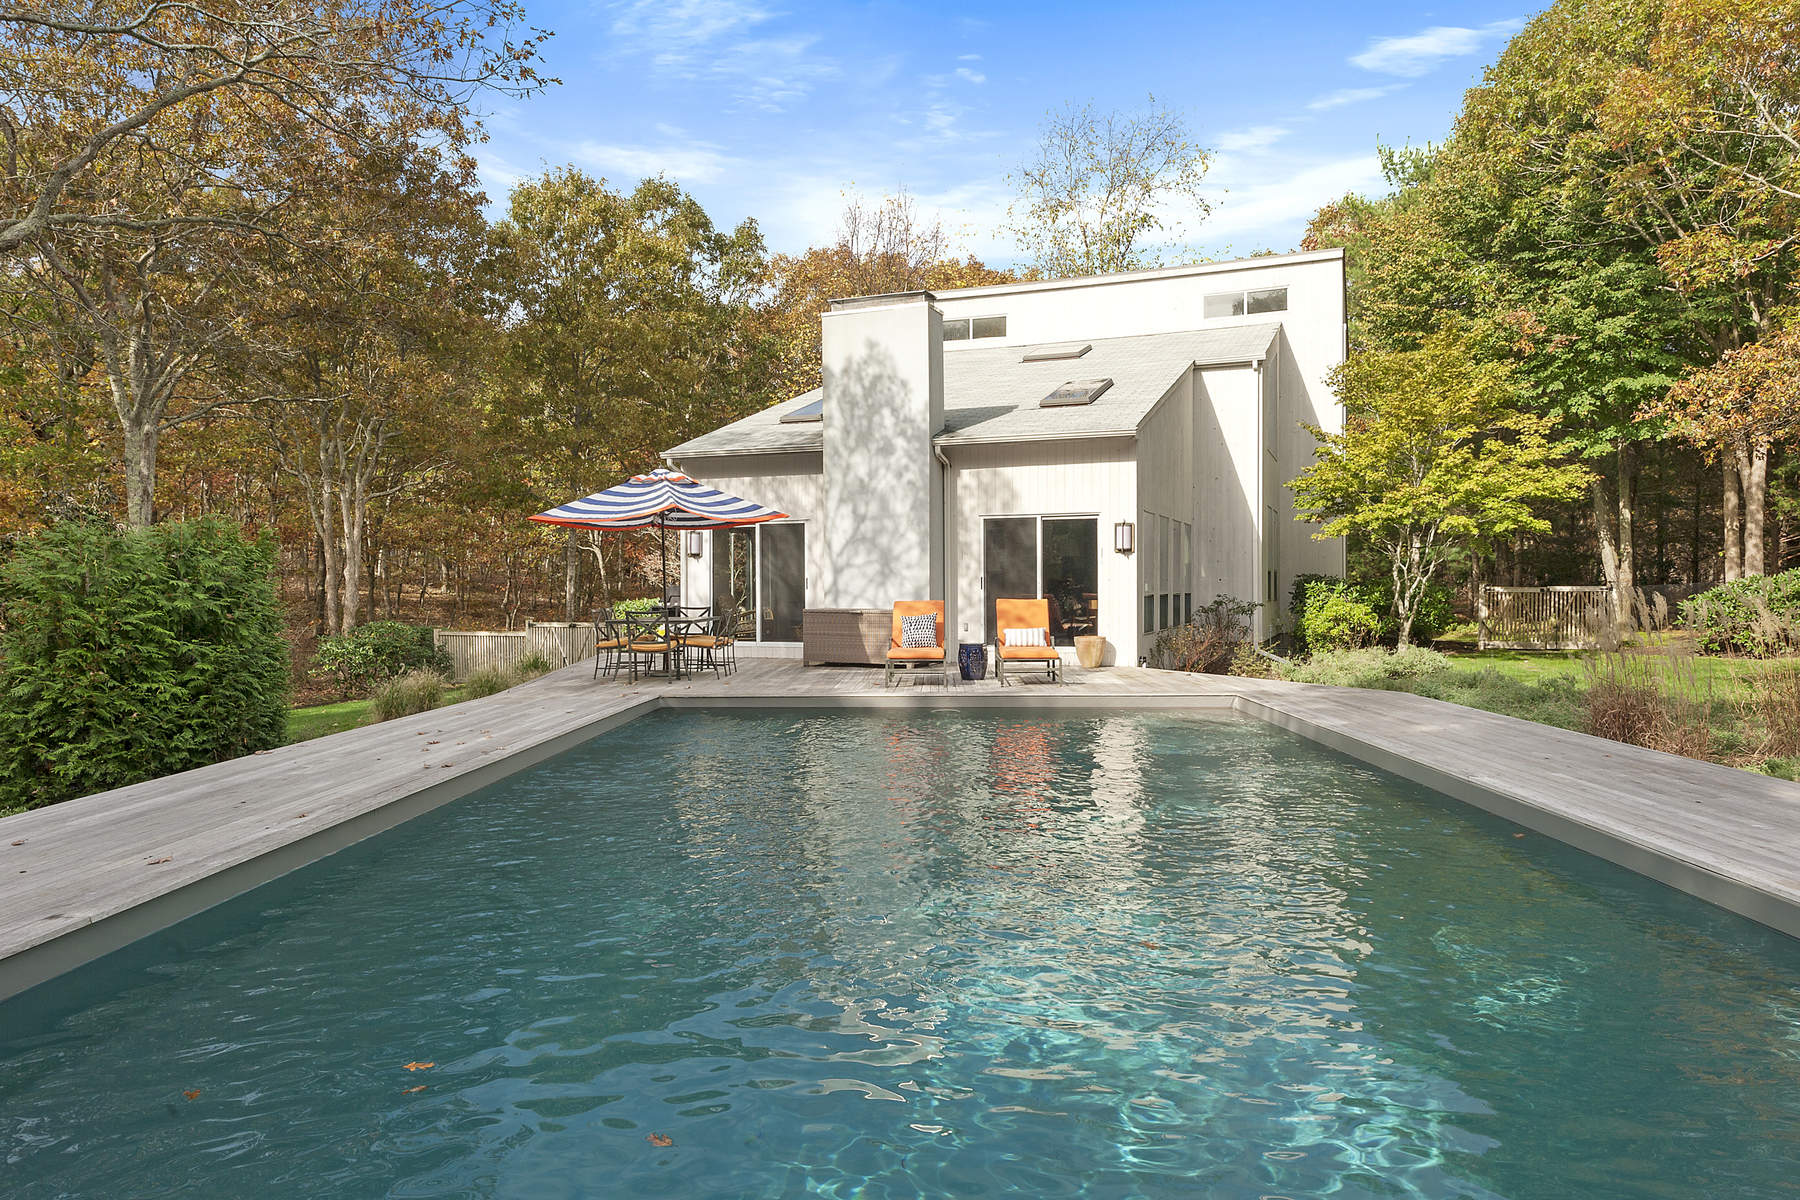 Single Family Home for Rent at Gorgeous Private Setting 752 Sagg Road Sagaponack, New York 11962 United States